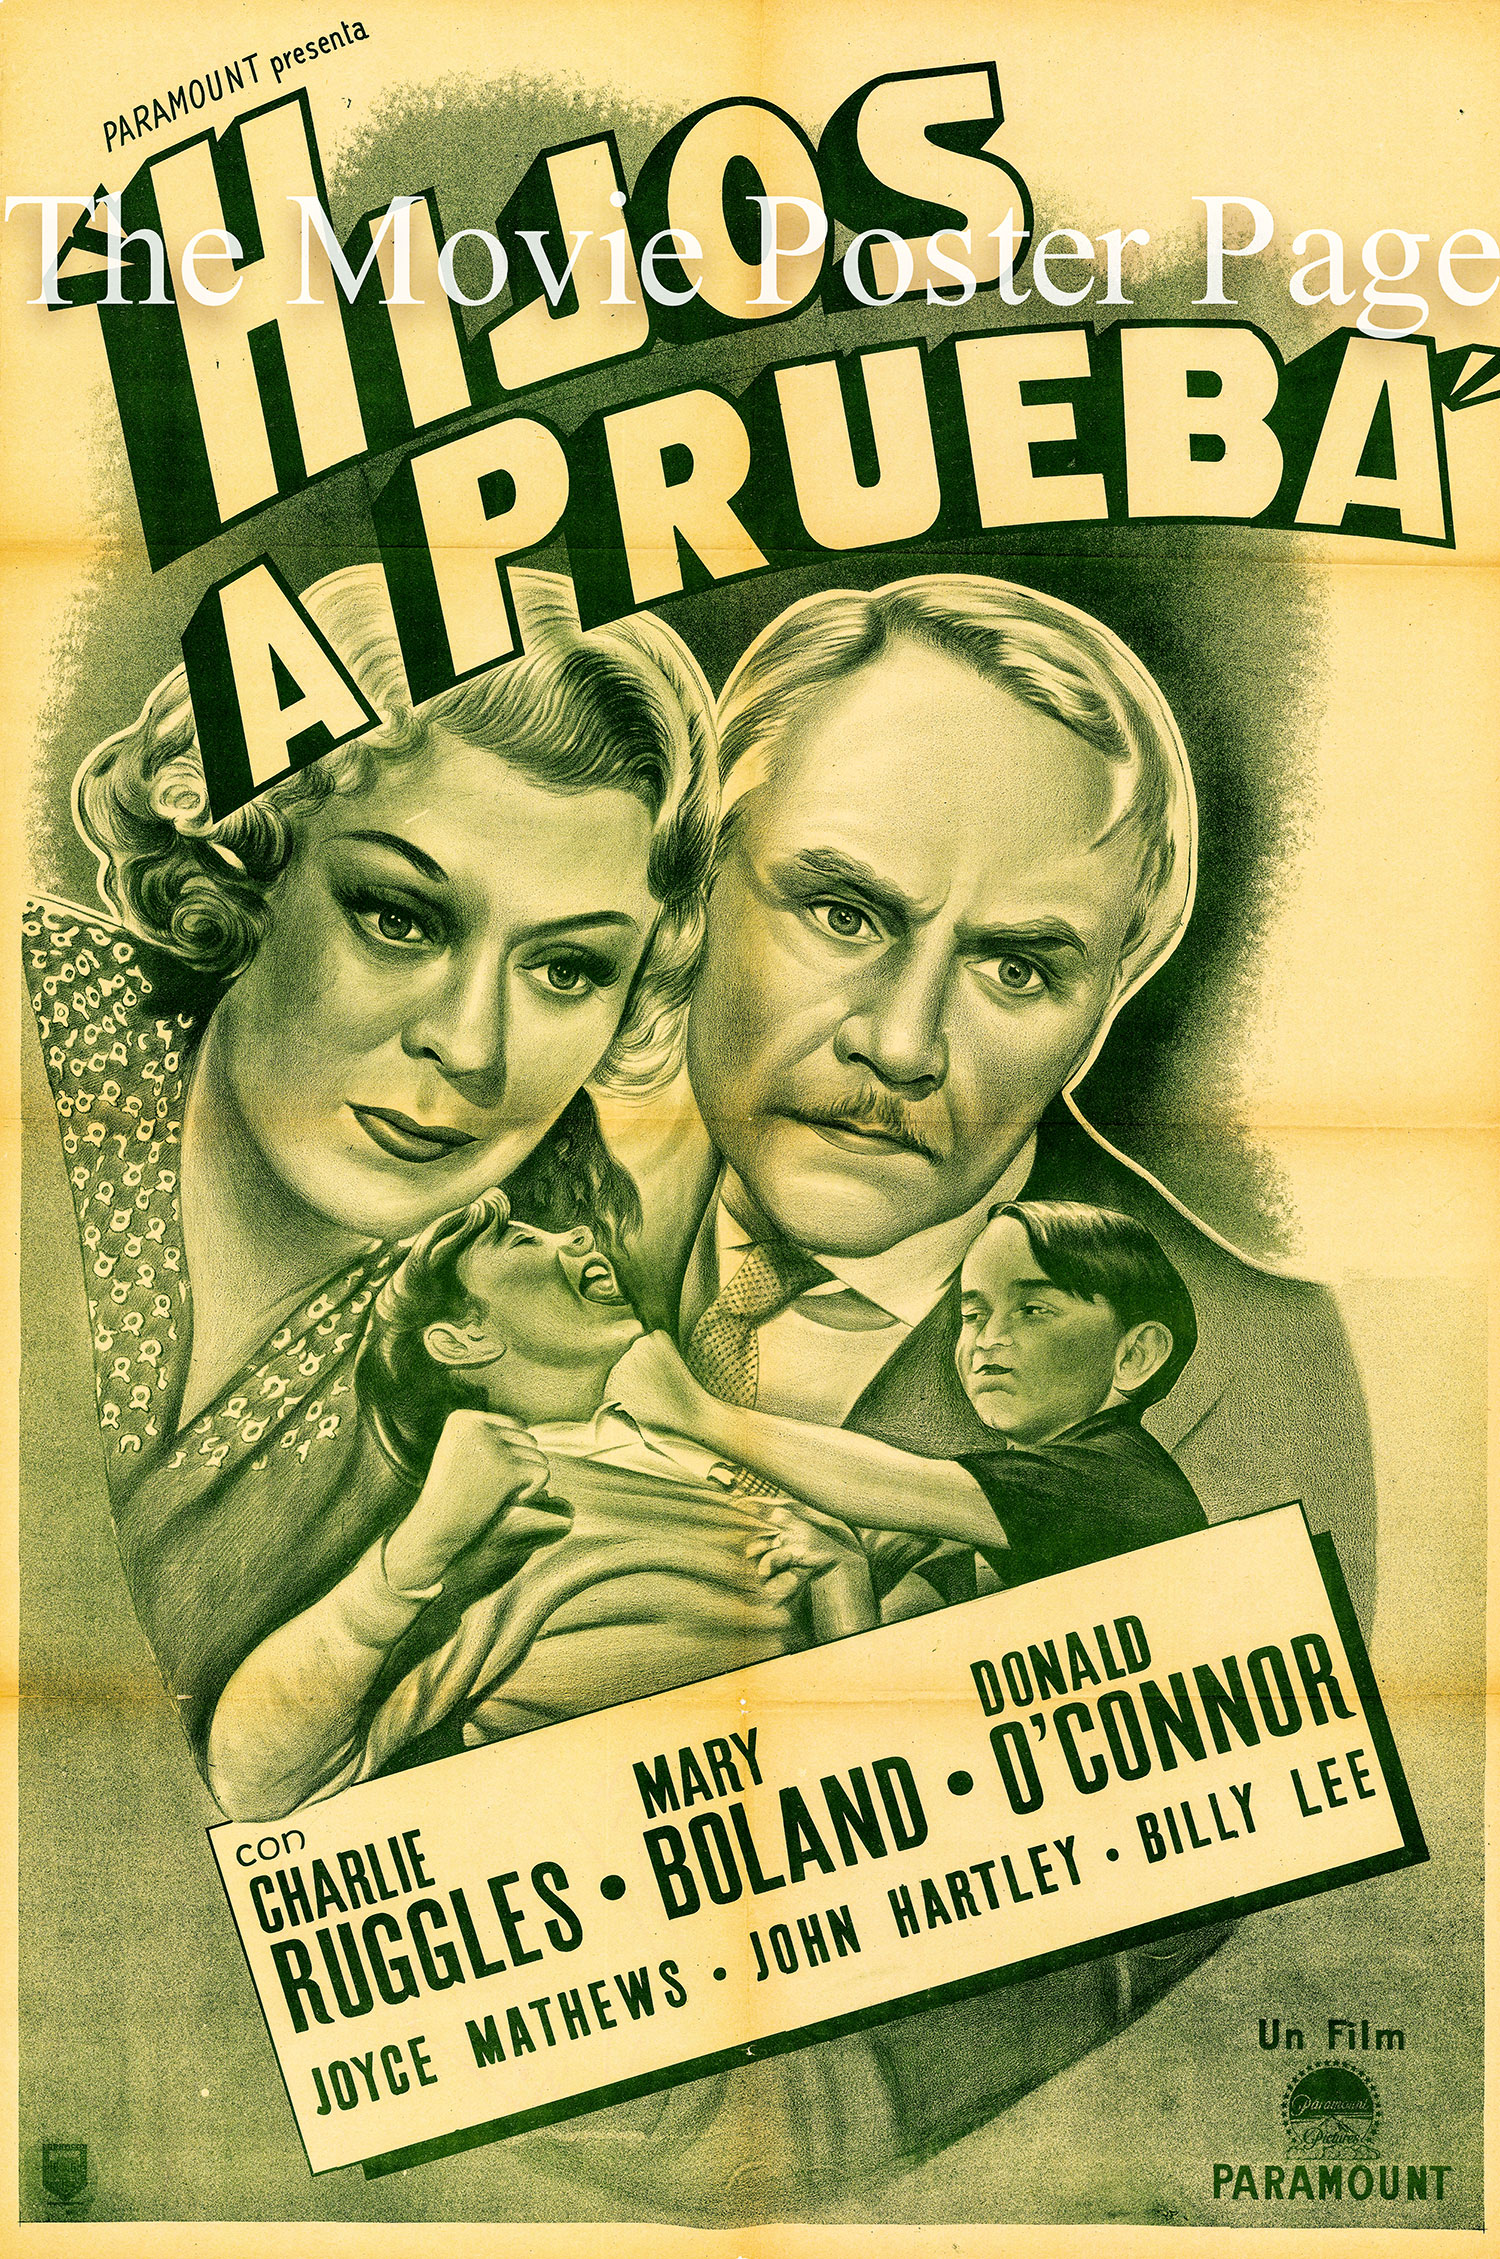 Pictured is an undated Argentine rerelease poster for the 1939 George Archainbaud film Boy Trouble starring Charles Ruggles as Homer C. Fitch.